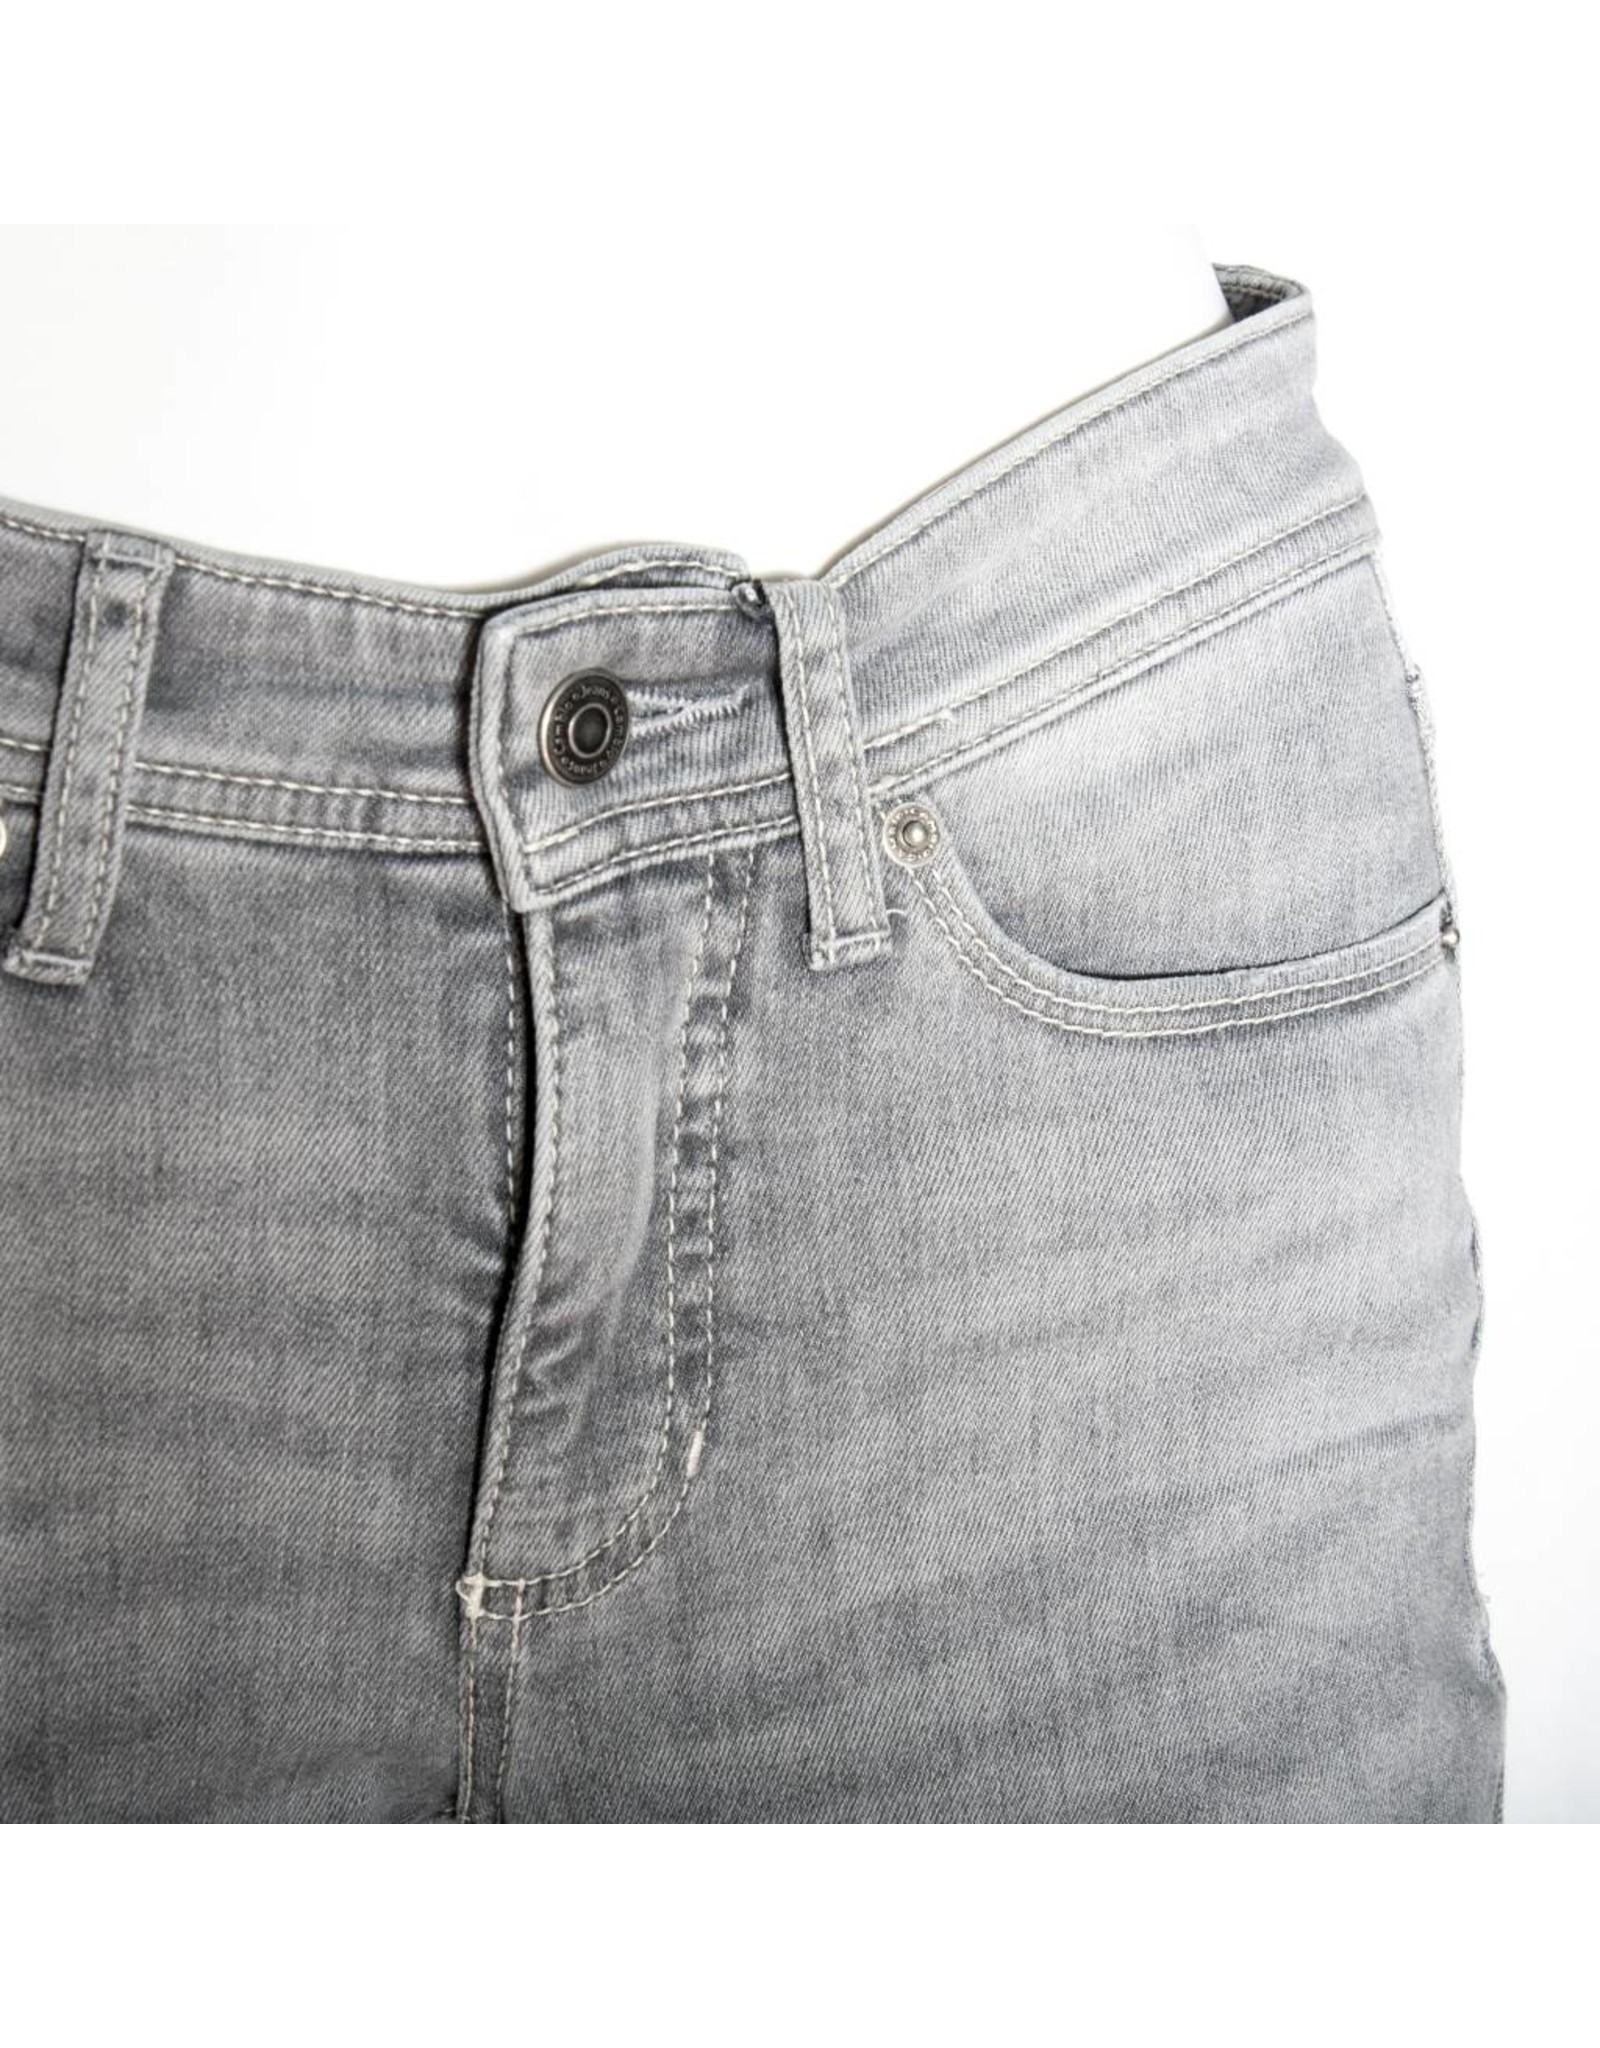 Cambio Cambio Parla Jeans - Light Grey